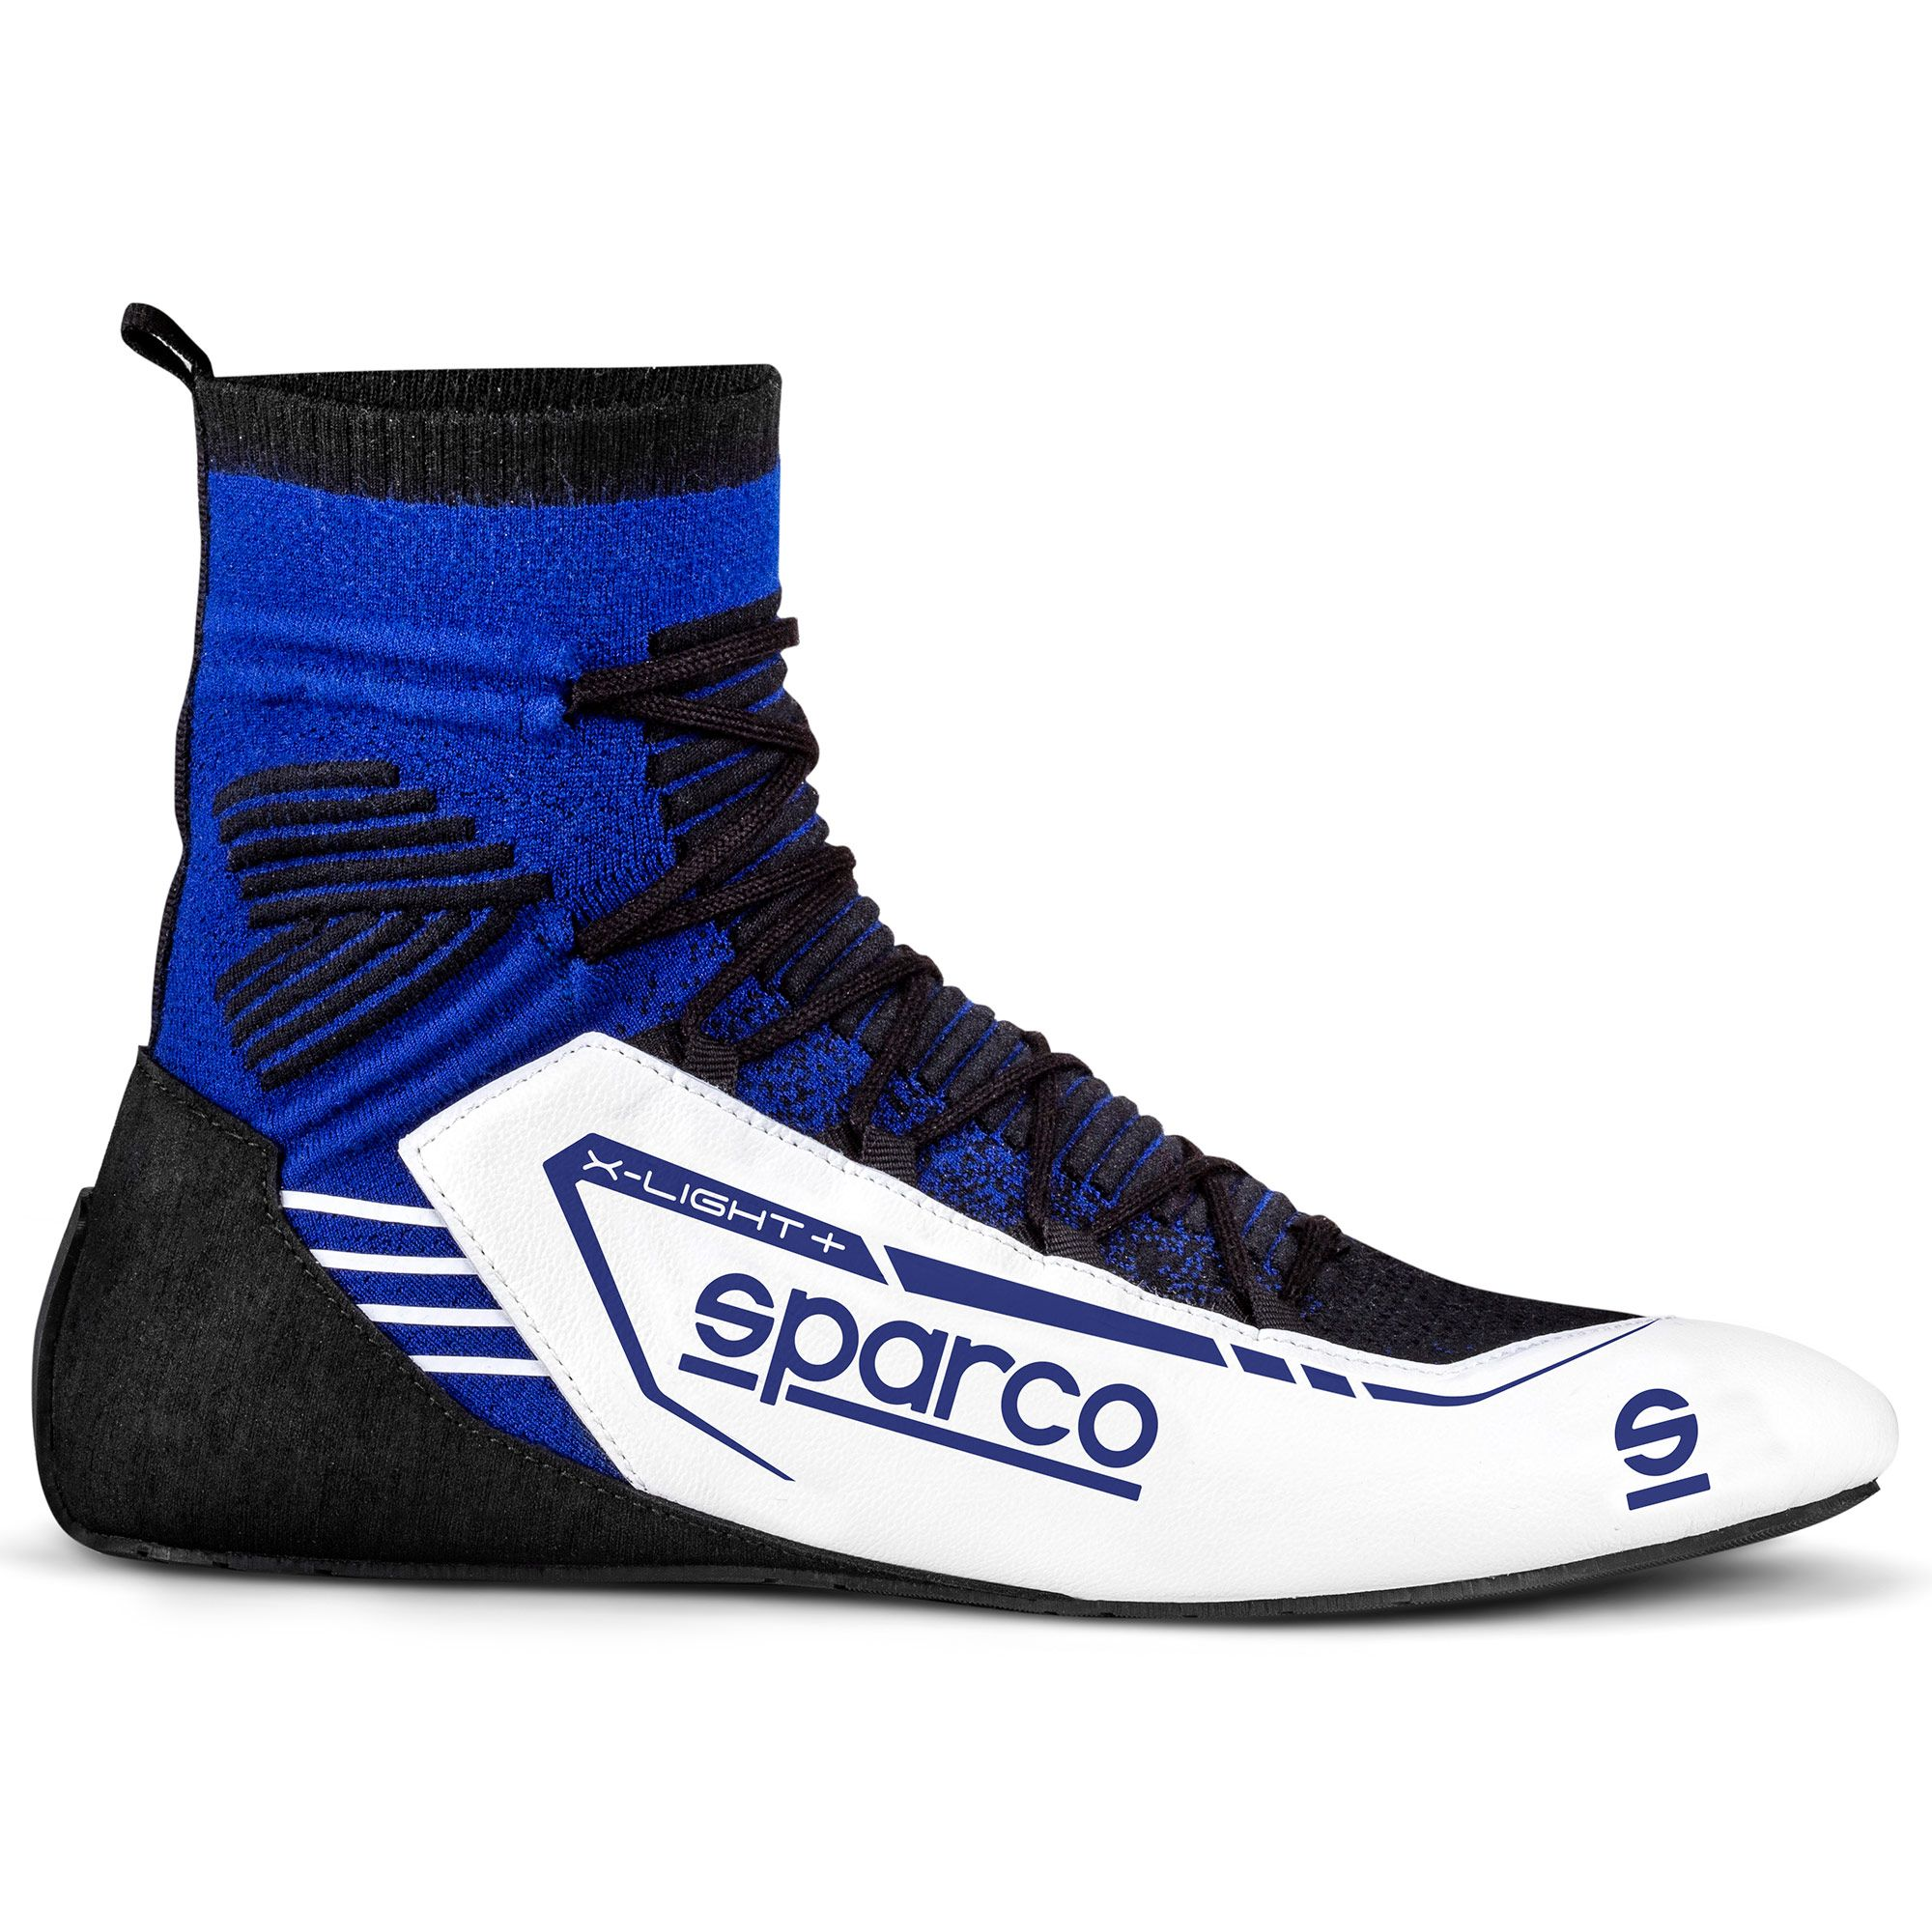 Sparco X-Light + Shoes - Saferacer